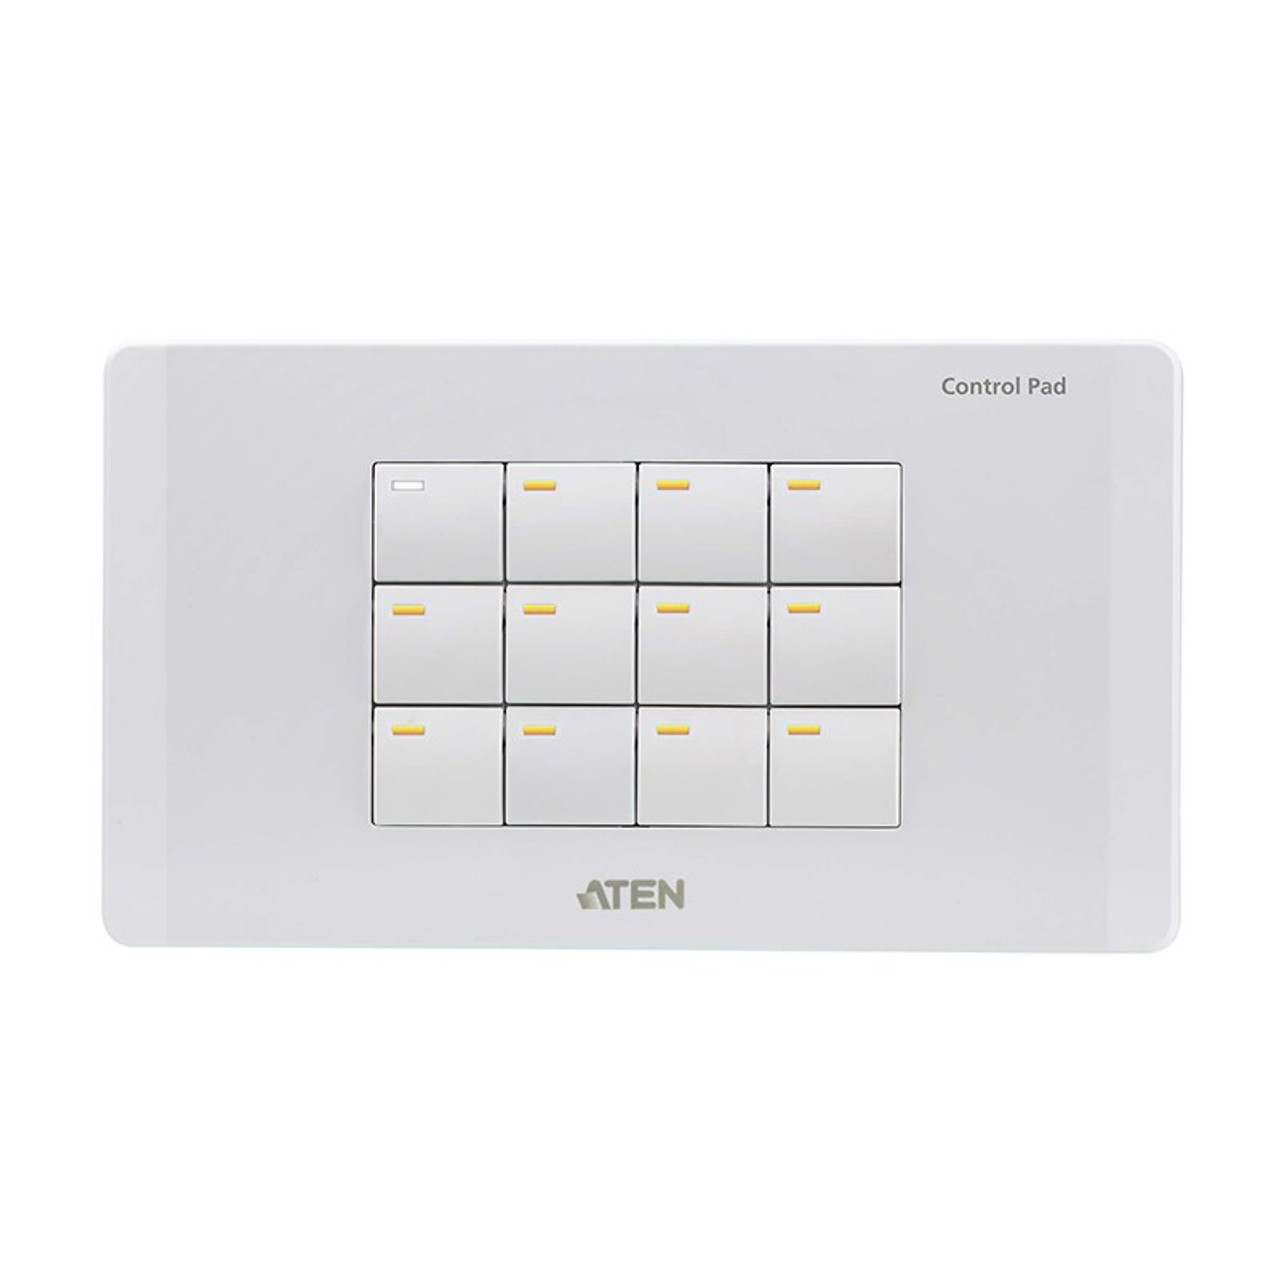 Image for ATEN VK0200 12-Button All-in-One Management Control Pad CX Computer Superstore